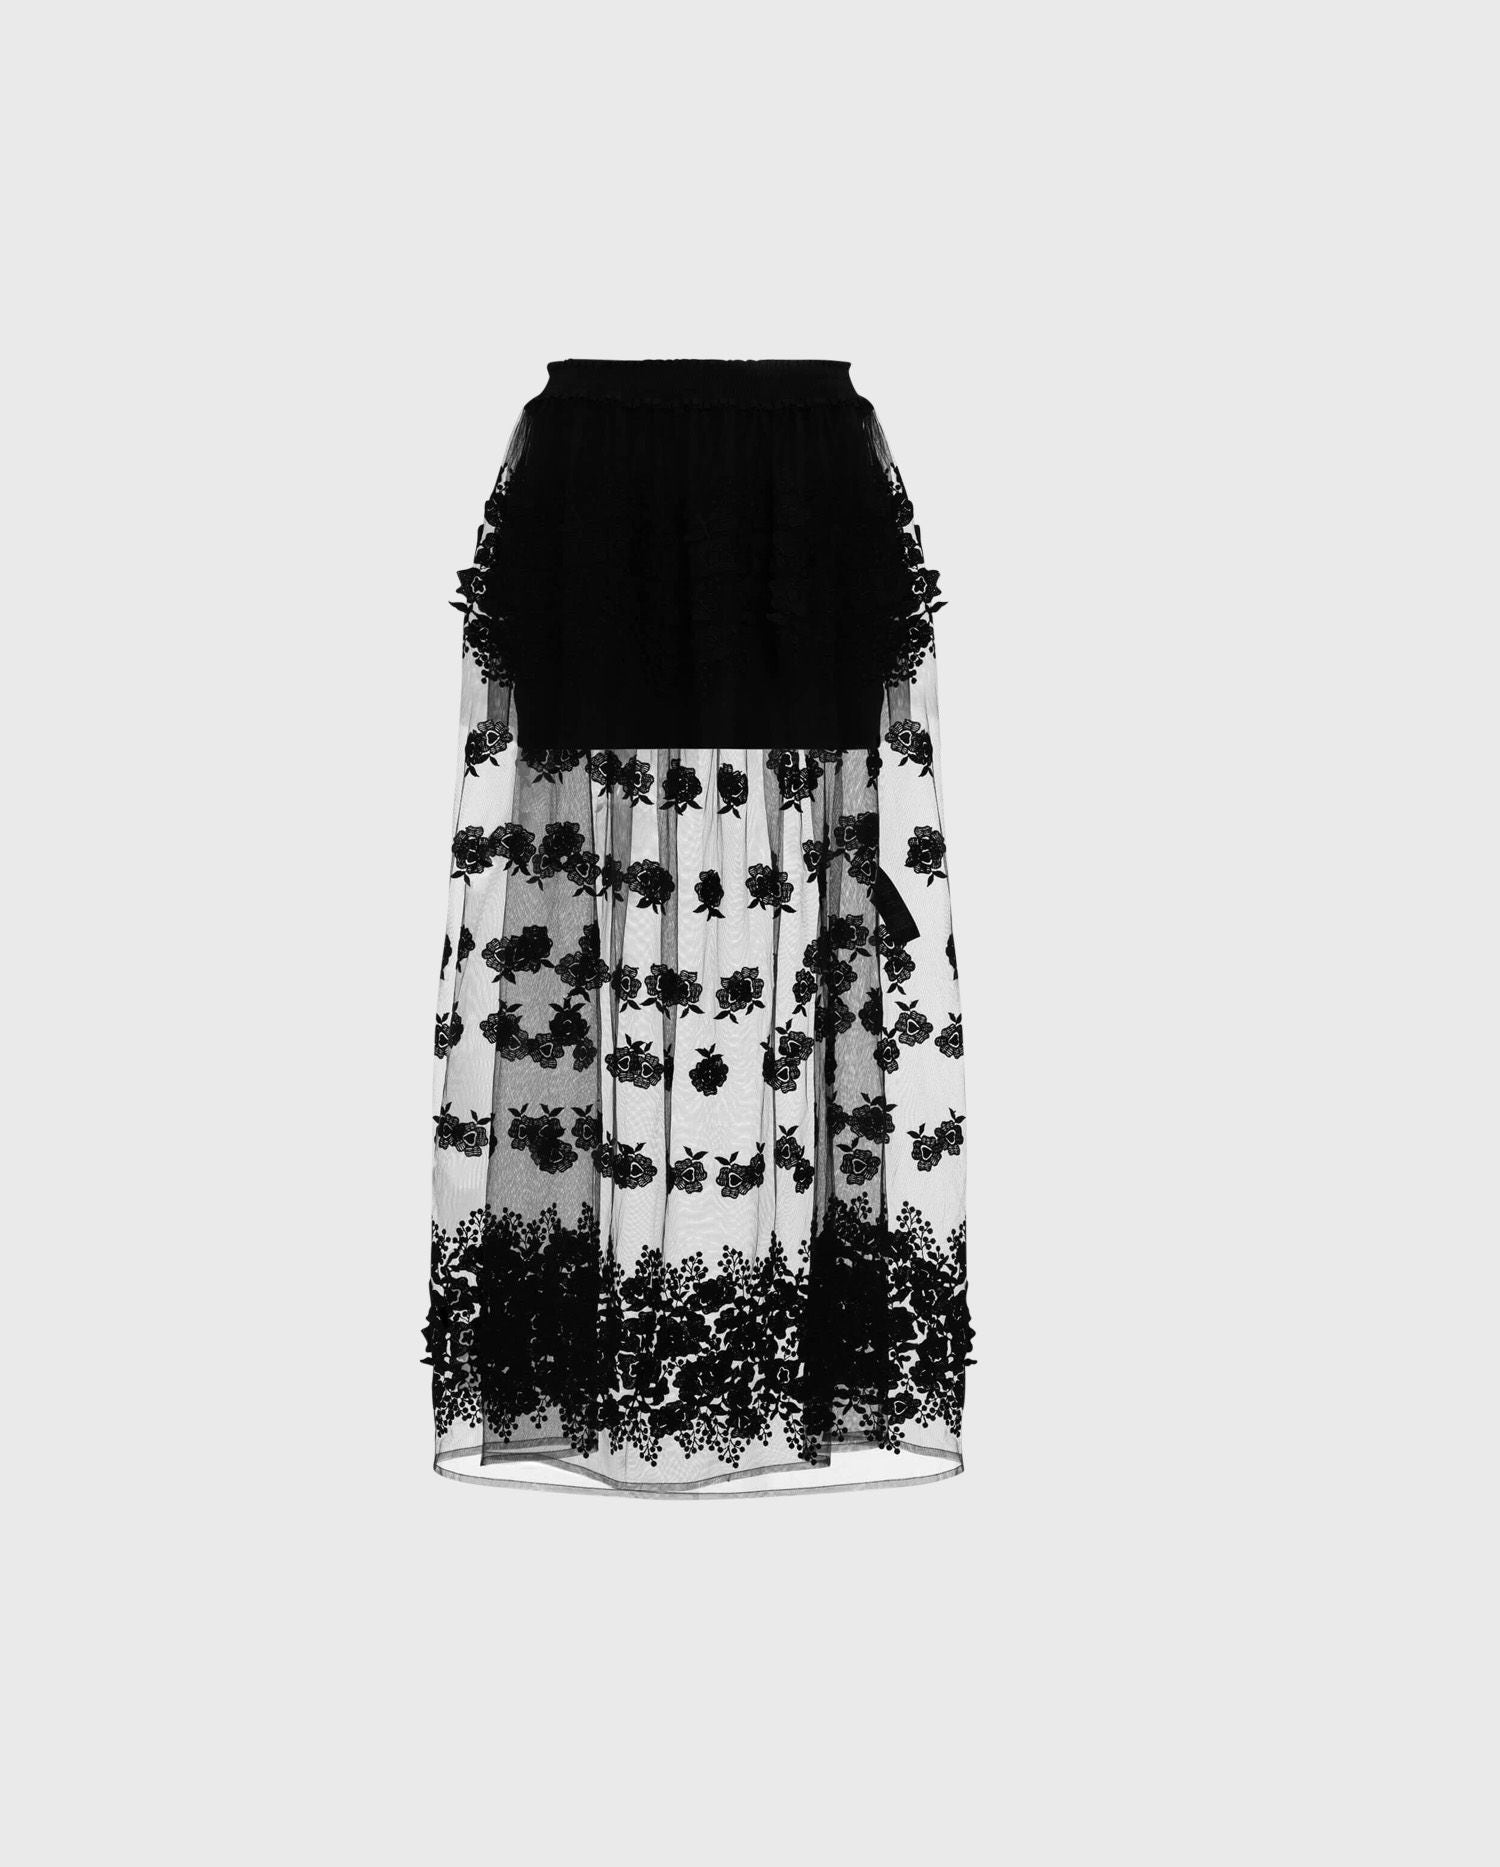 Add the PARADIS black mesh floral statement skirt to your wardrobe to make sure your ready to make an entrance